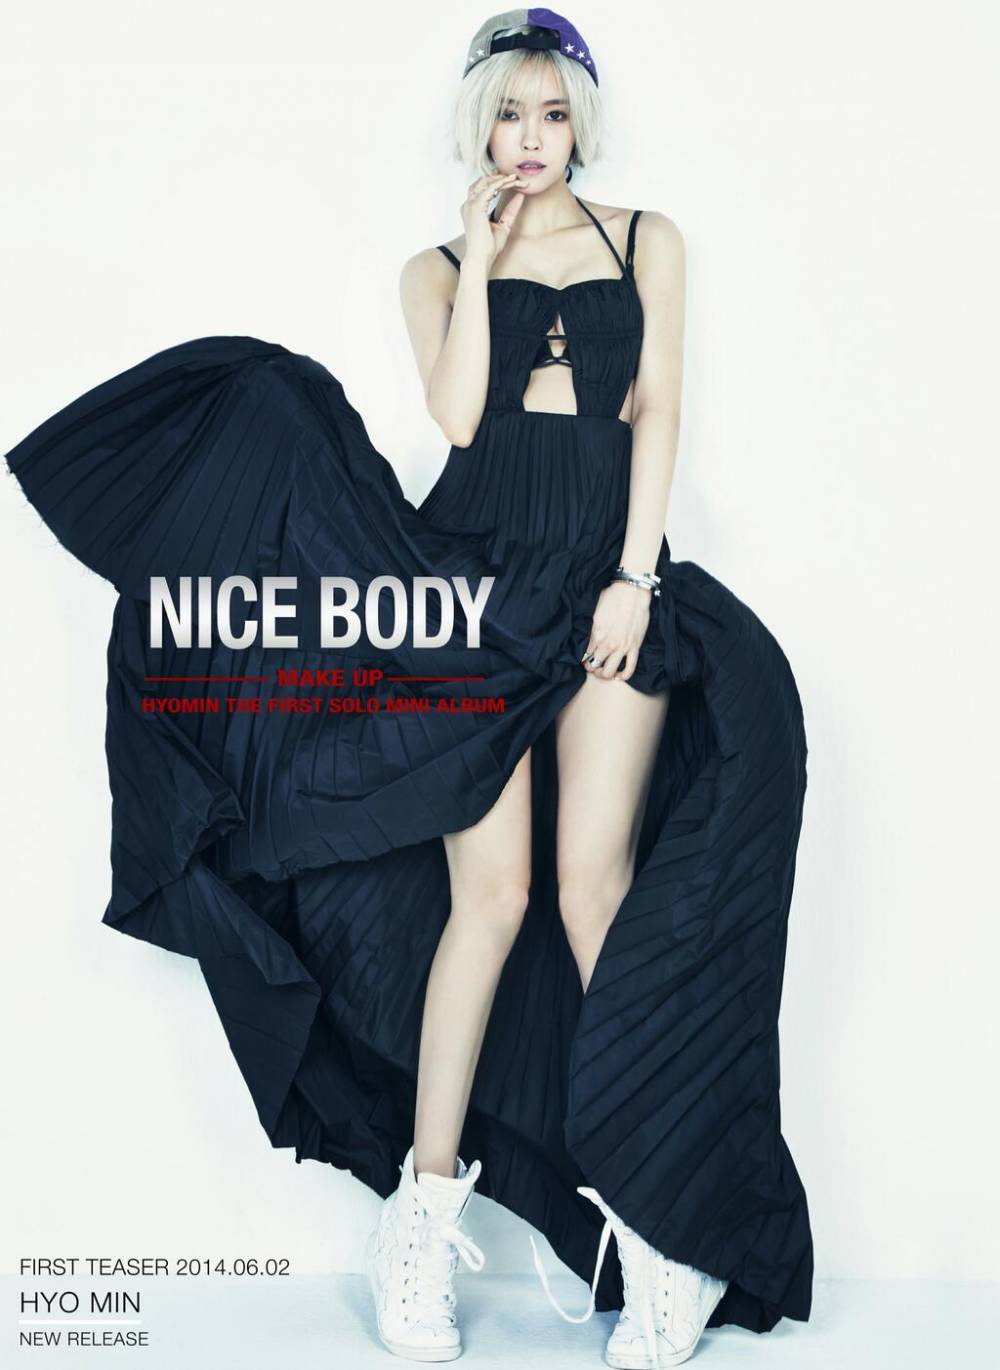 Hyomin-shows-off-her-Nice-Body-in-first-teaser-image-for-solo-mini-album-debut-http-www-allkpo-wallpaper-wp4606943-1